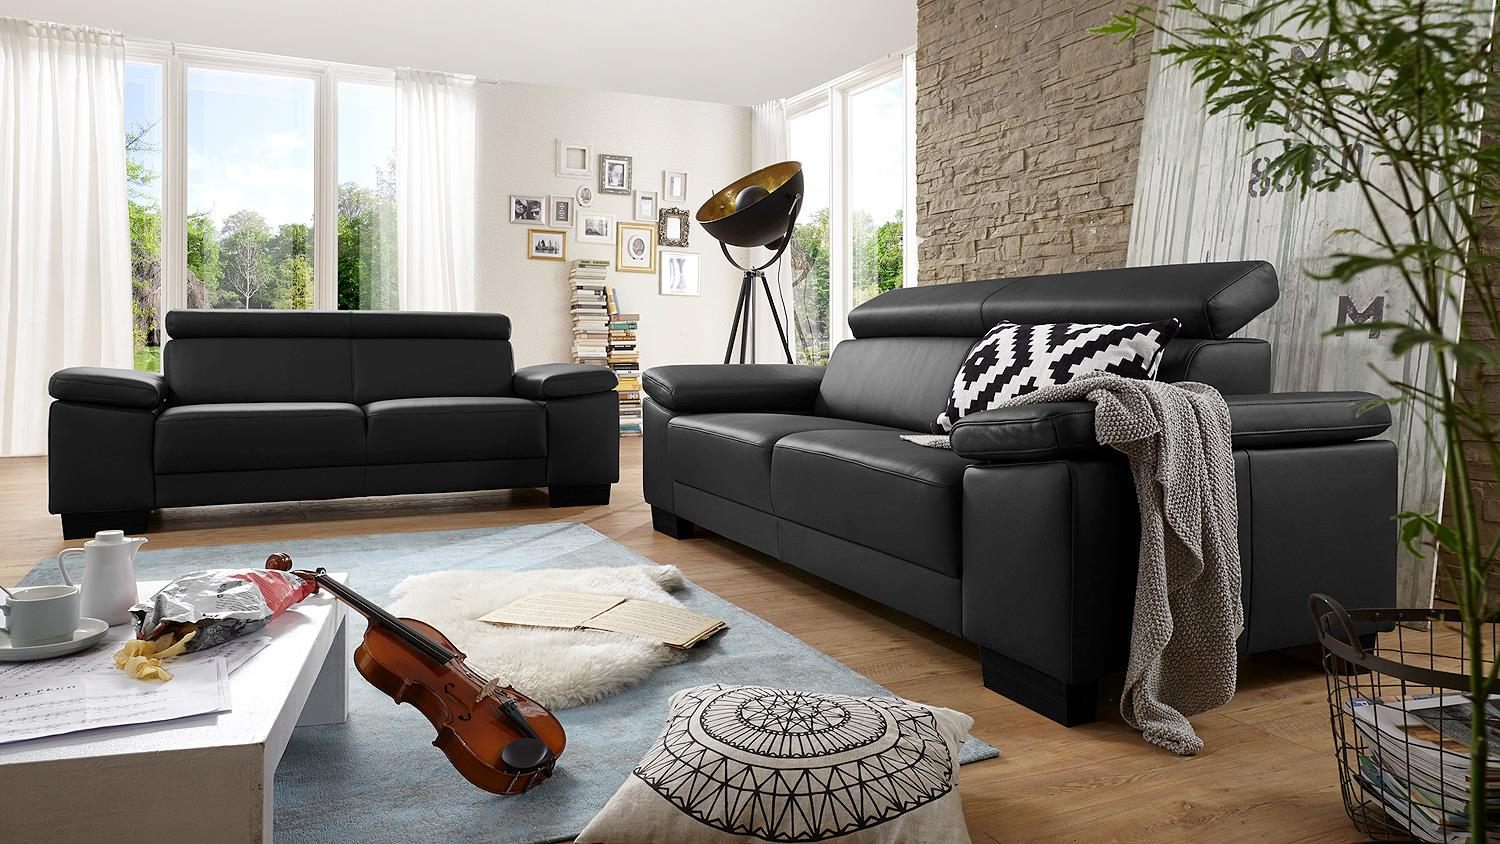 sofa santiago dreisitzer in leder schwarz mit funktion 226. Black Bedroom Furniture Sets. Home Design Ideas